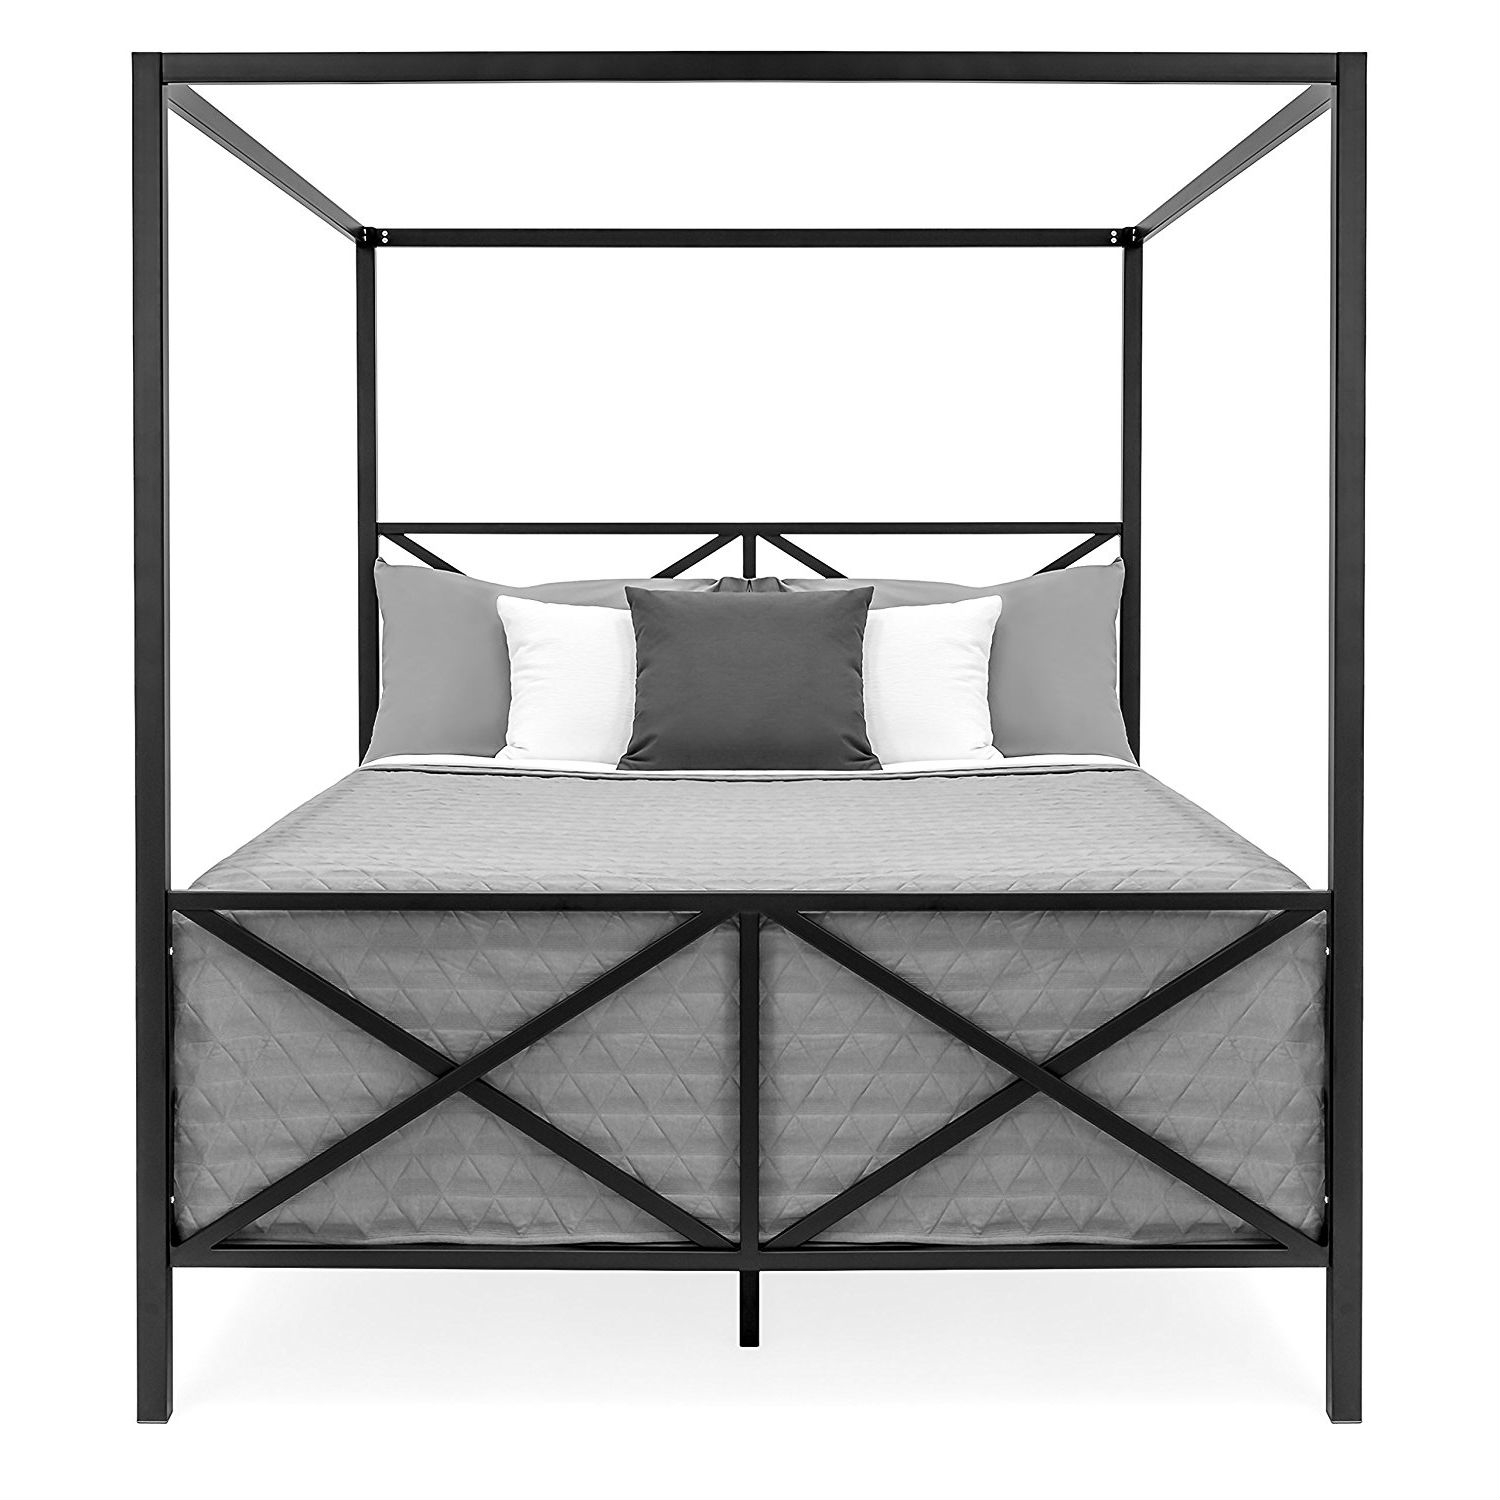 - Queen Size Metal Canopy Bed Frame - Canopy Ideas 2020